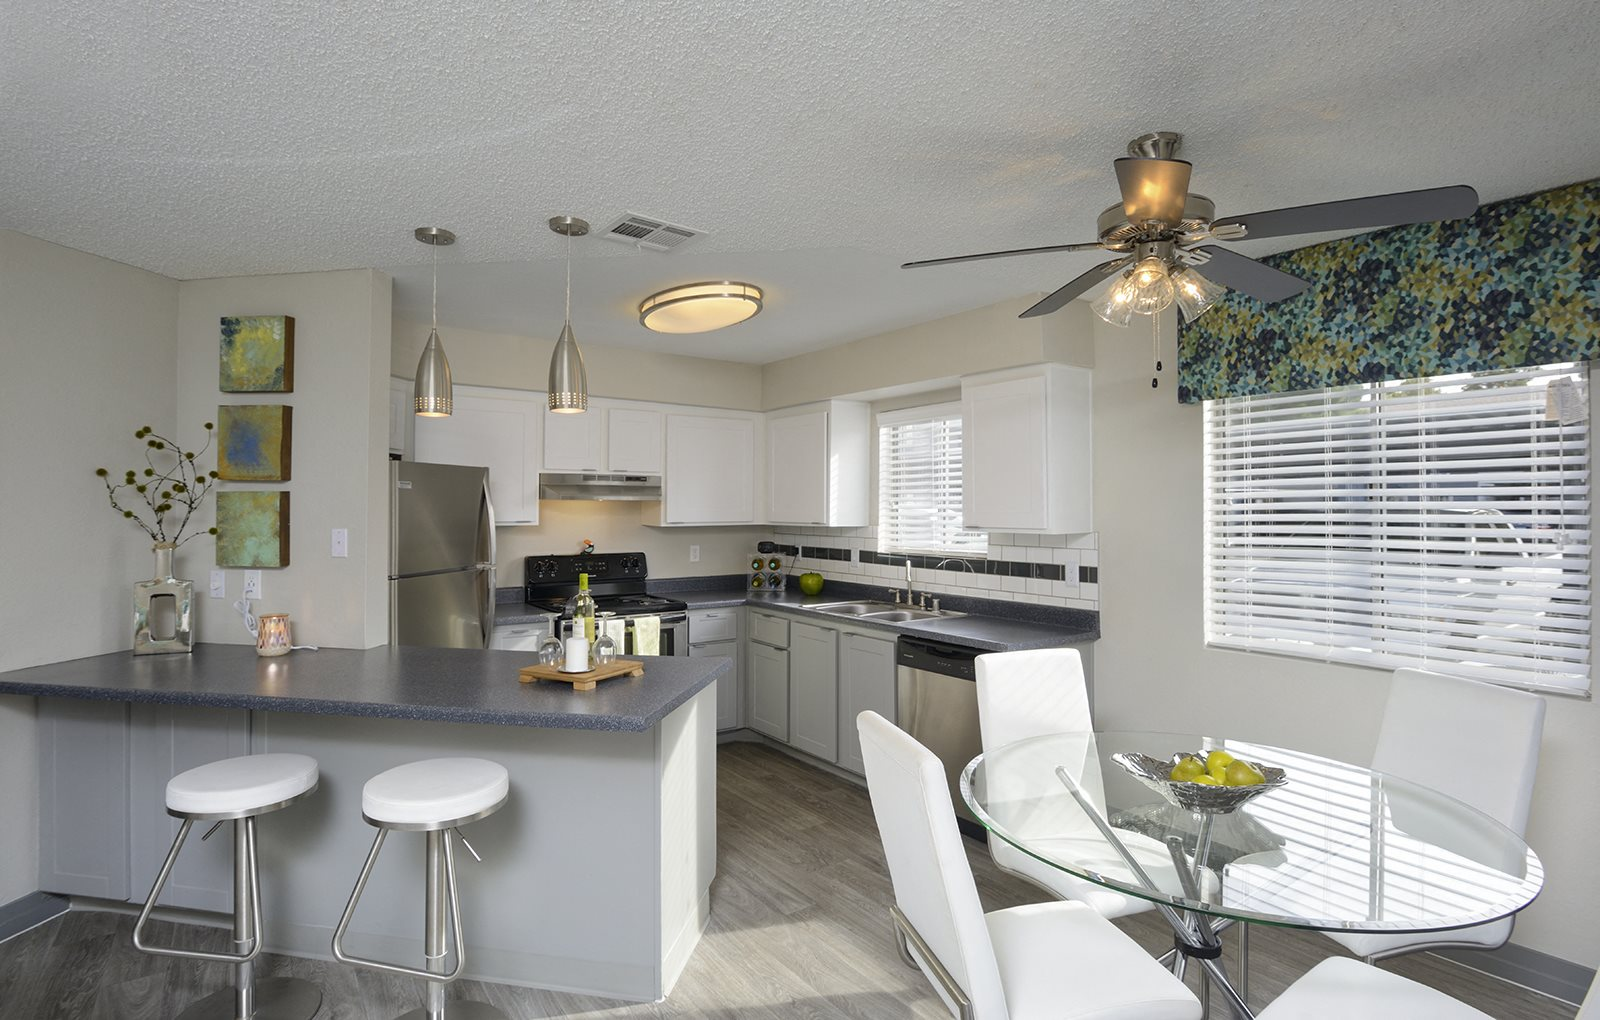 Kitchen with White Cabinetry and Appliances, at The Bristol at Sunset, Henderson, NV